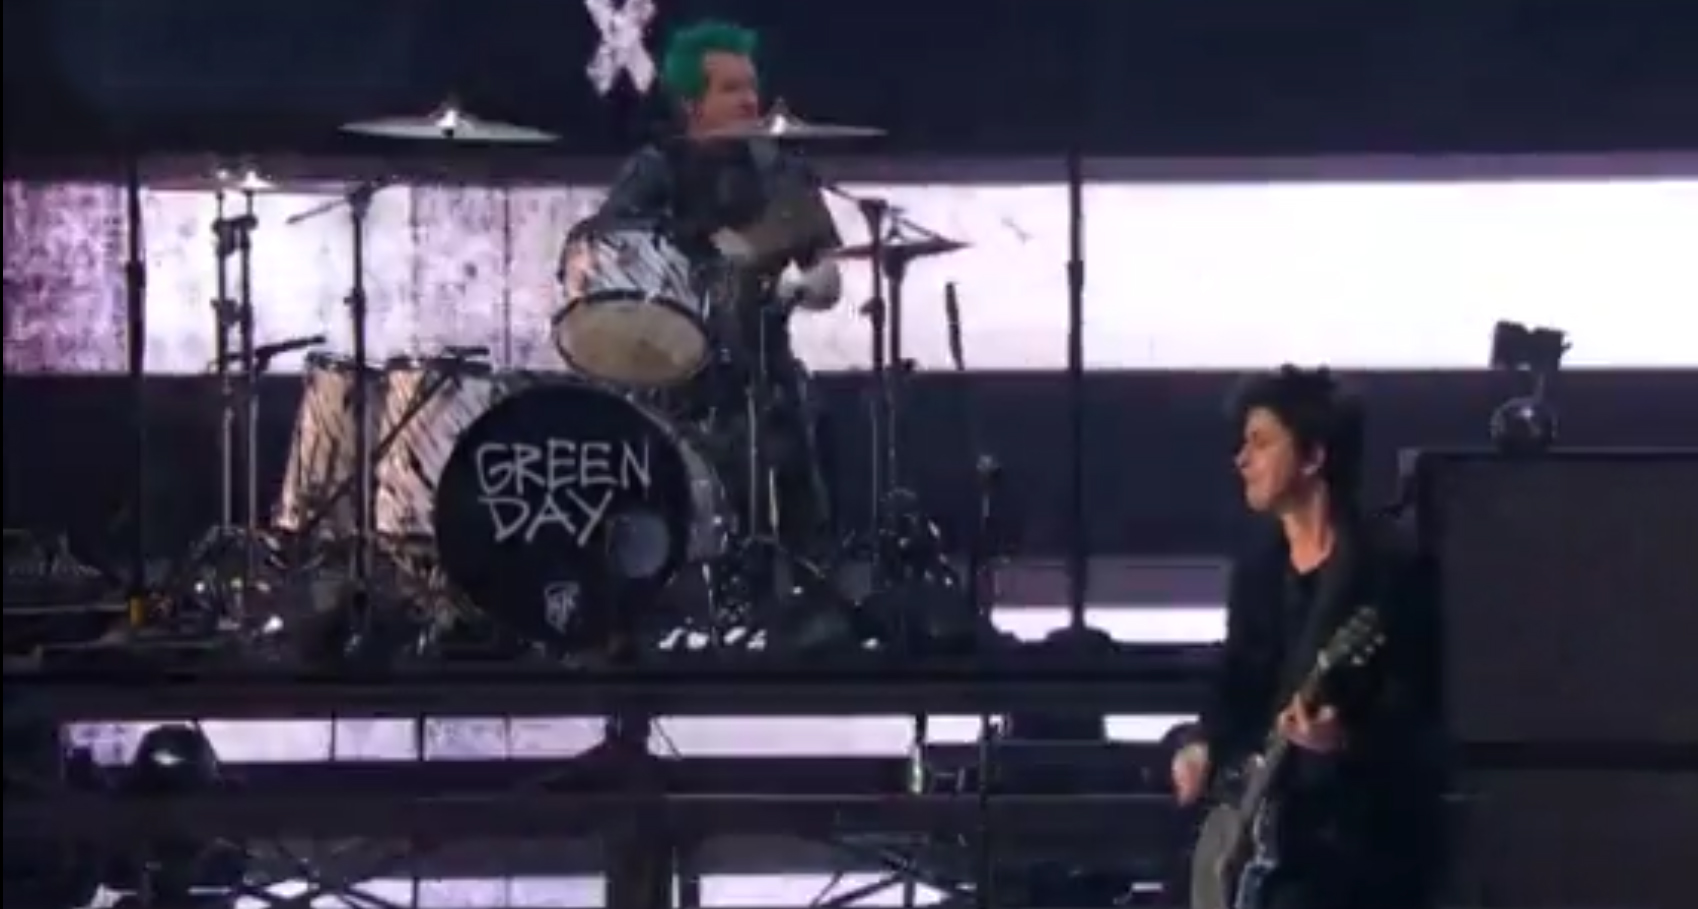 mtv-green-day